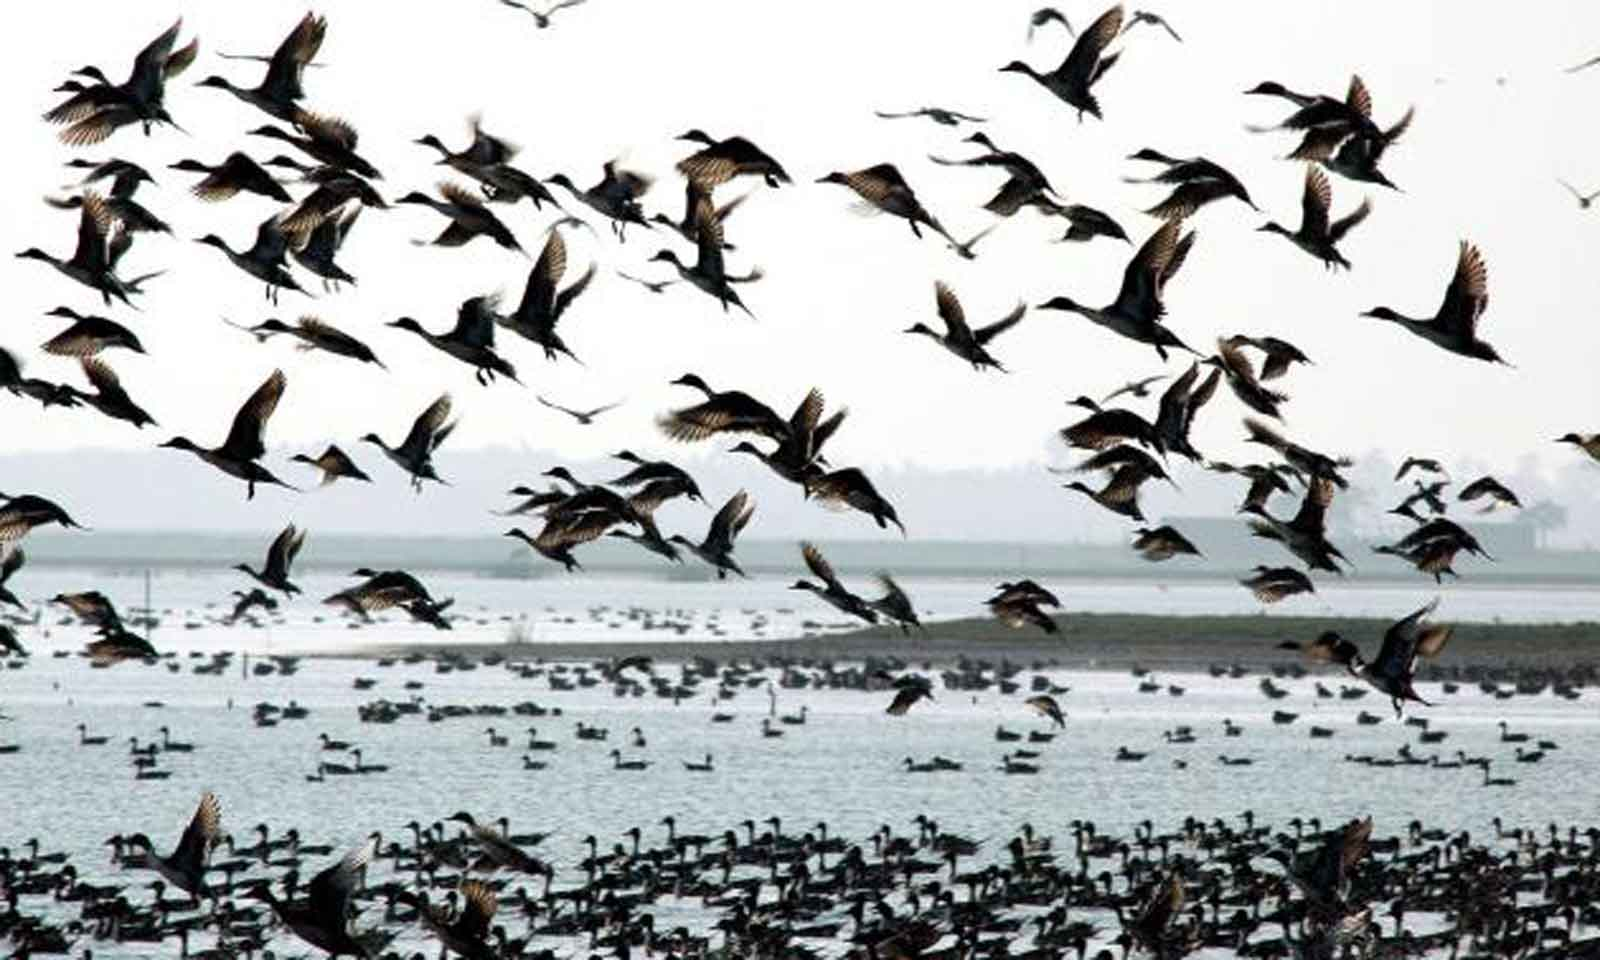 Madhabananda Panda's odia poem for children Aasa Aasa Aame Chilika Jibaa